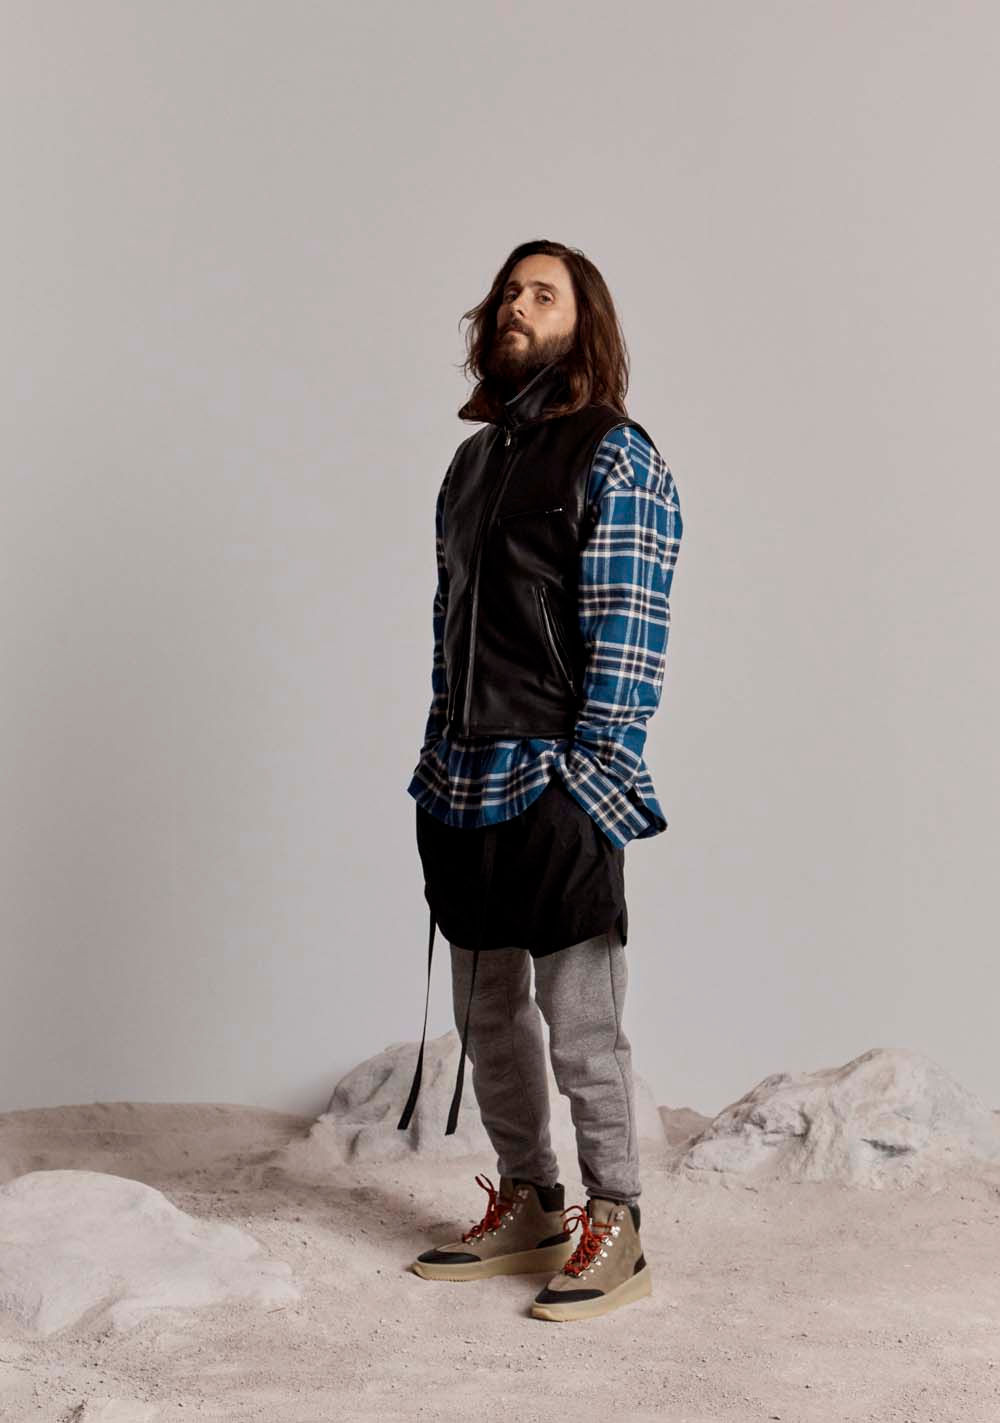 https_%2F%2Fhypebeast.com%2Fimage%2F2018%2F09%2Ffear-of-god-6-sixth-collection-jared-leto-nike-29.jpg